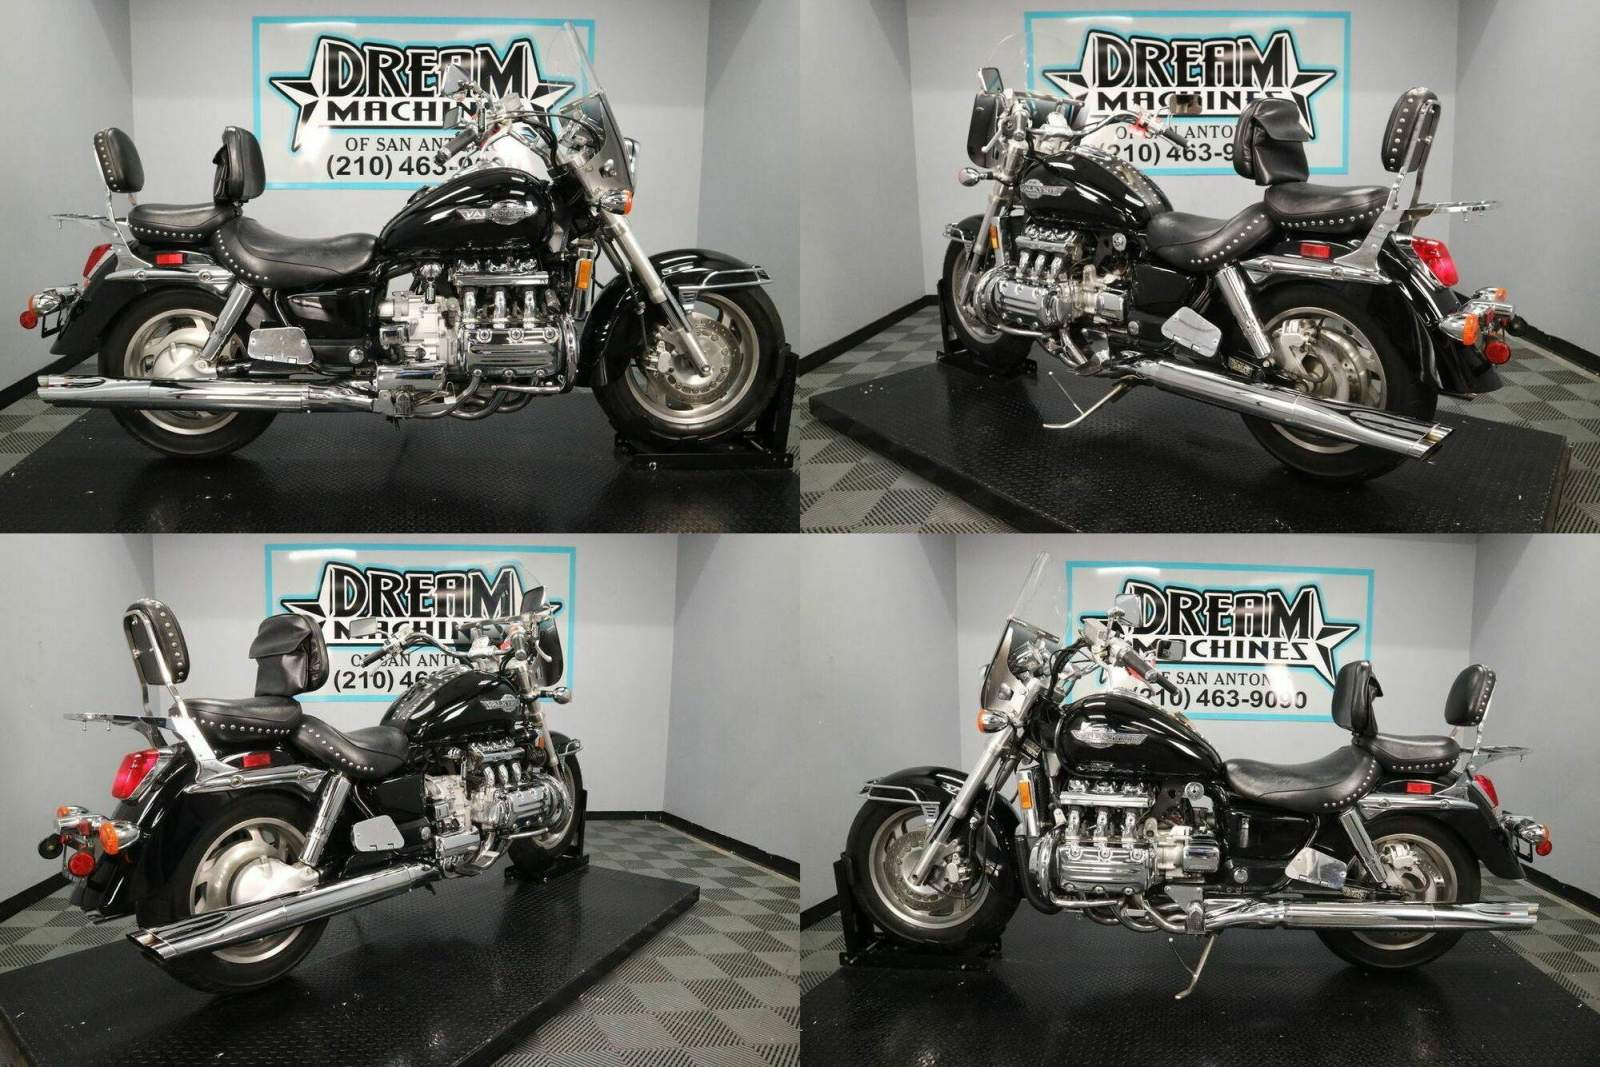 1998 Honda Gold Wing Valkyrie GL1500C Black used for sale craigslist